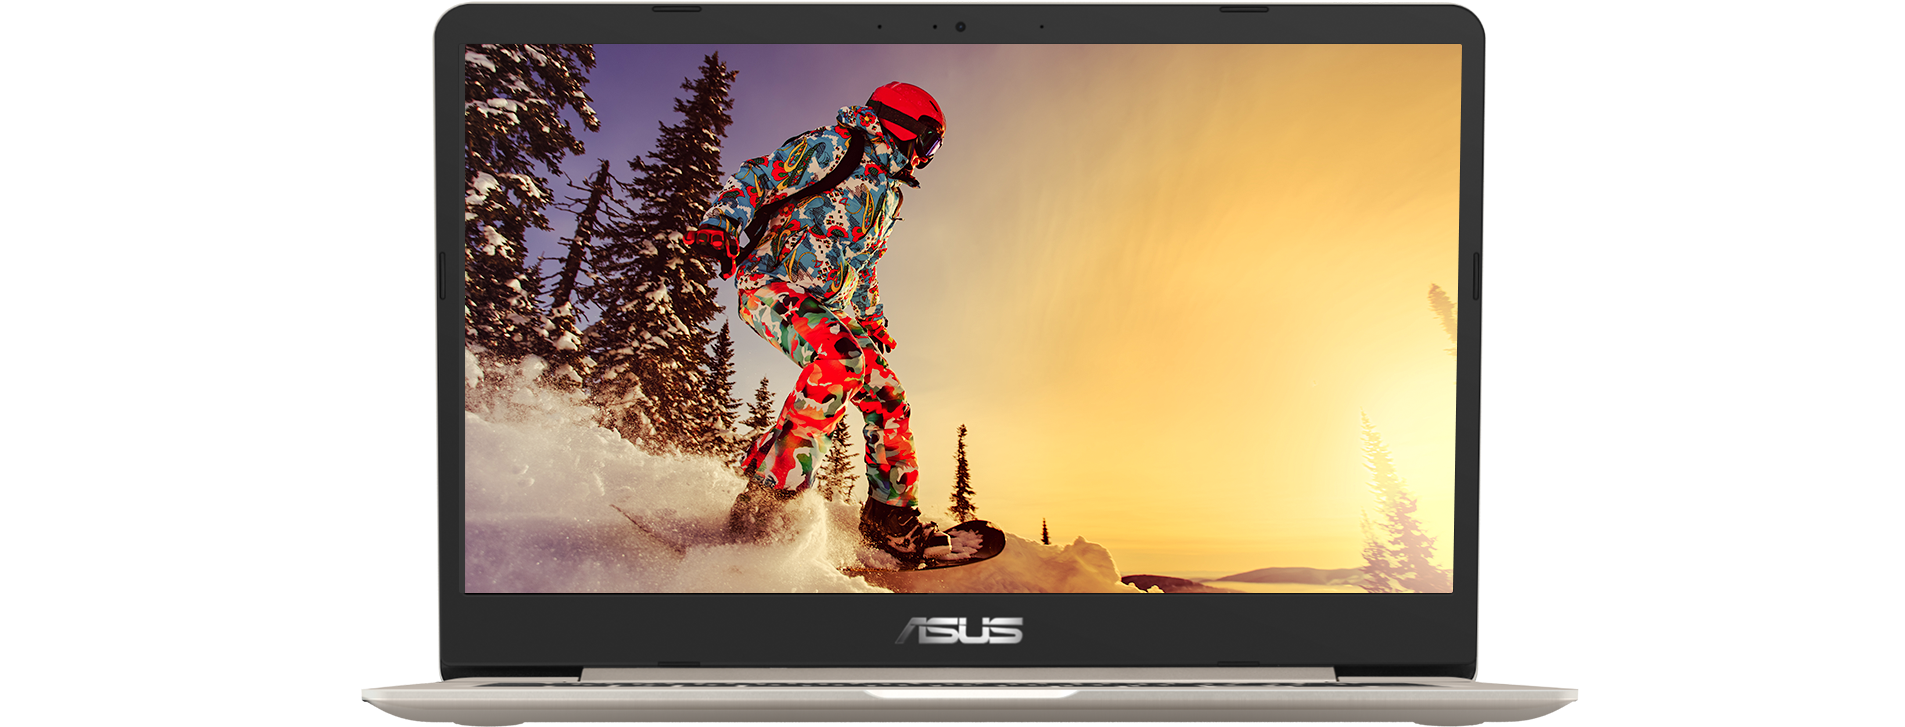 https://dlcdnimgs.asus.com/websites/global/products/tzzs0Fp8WiRNoTKl/images/desktop/img-video.png